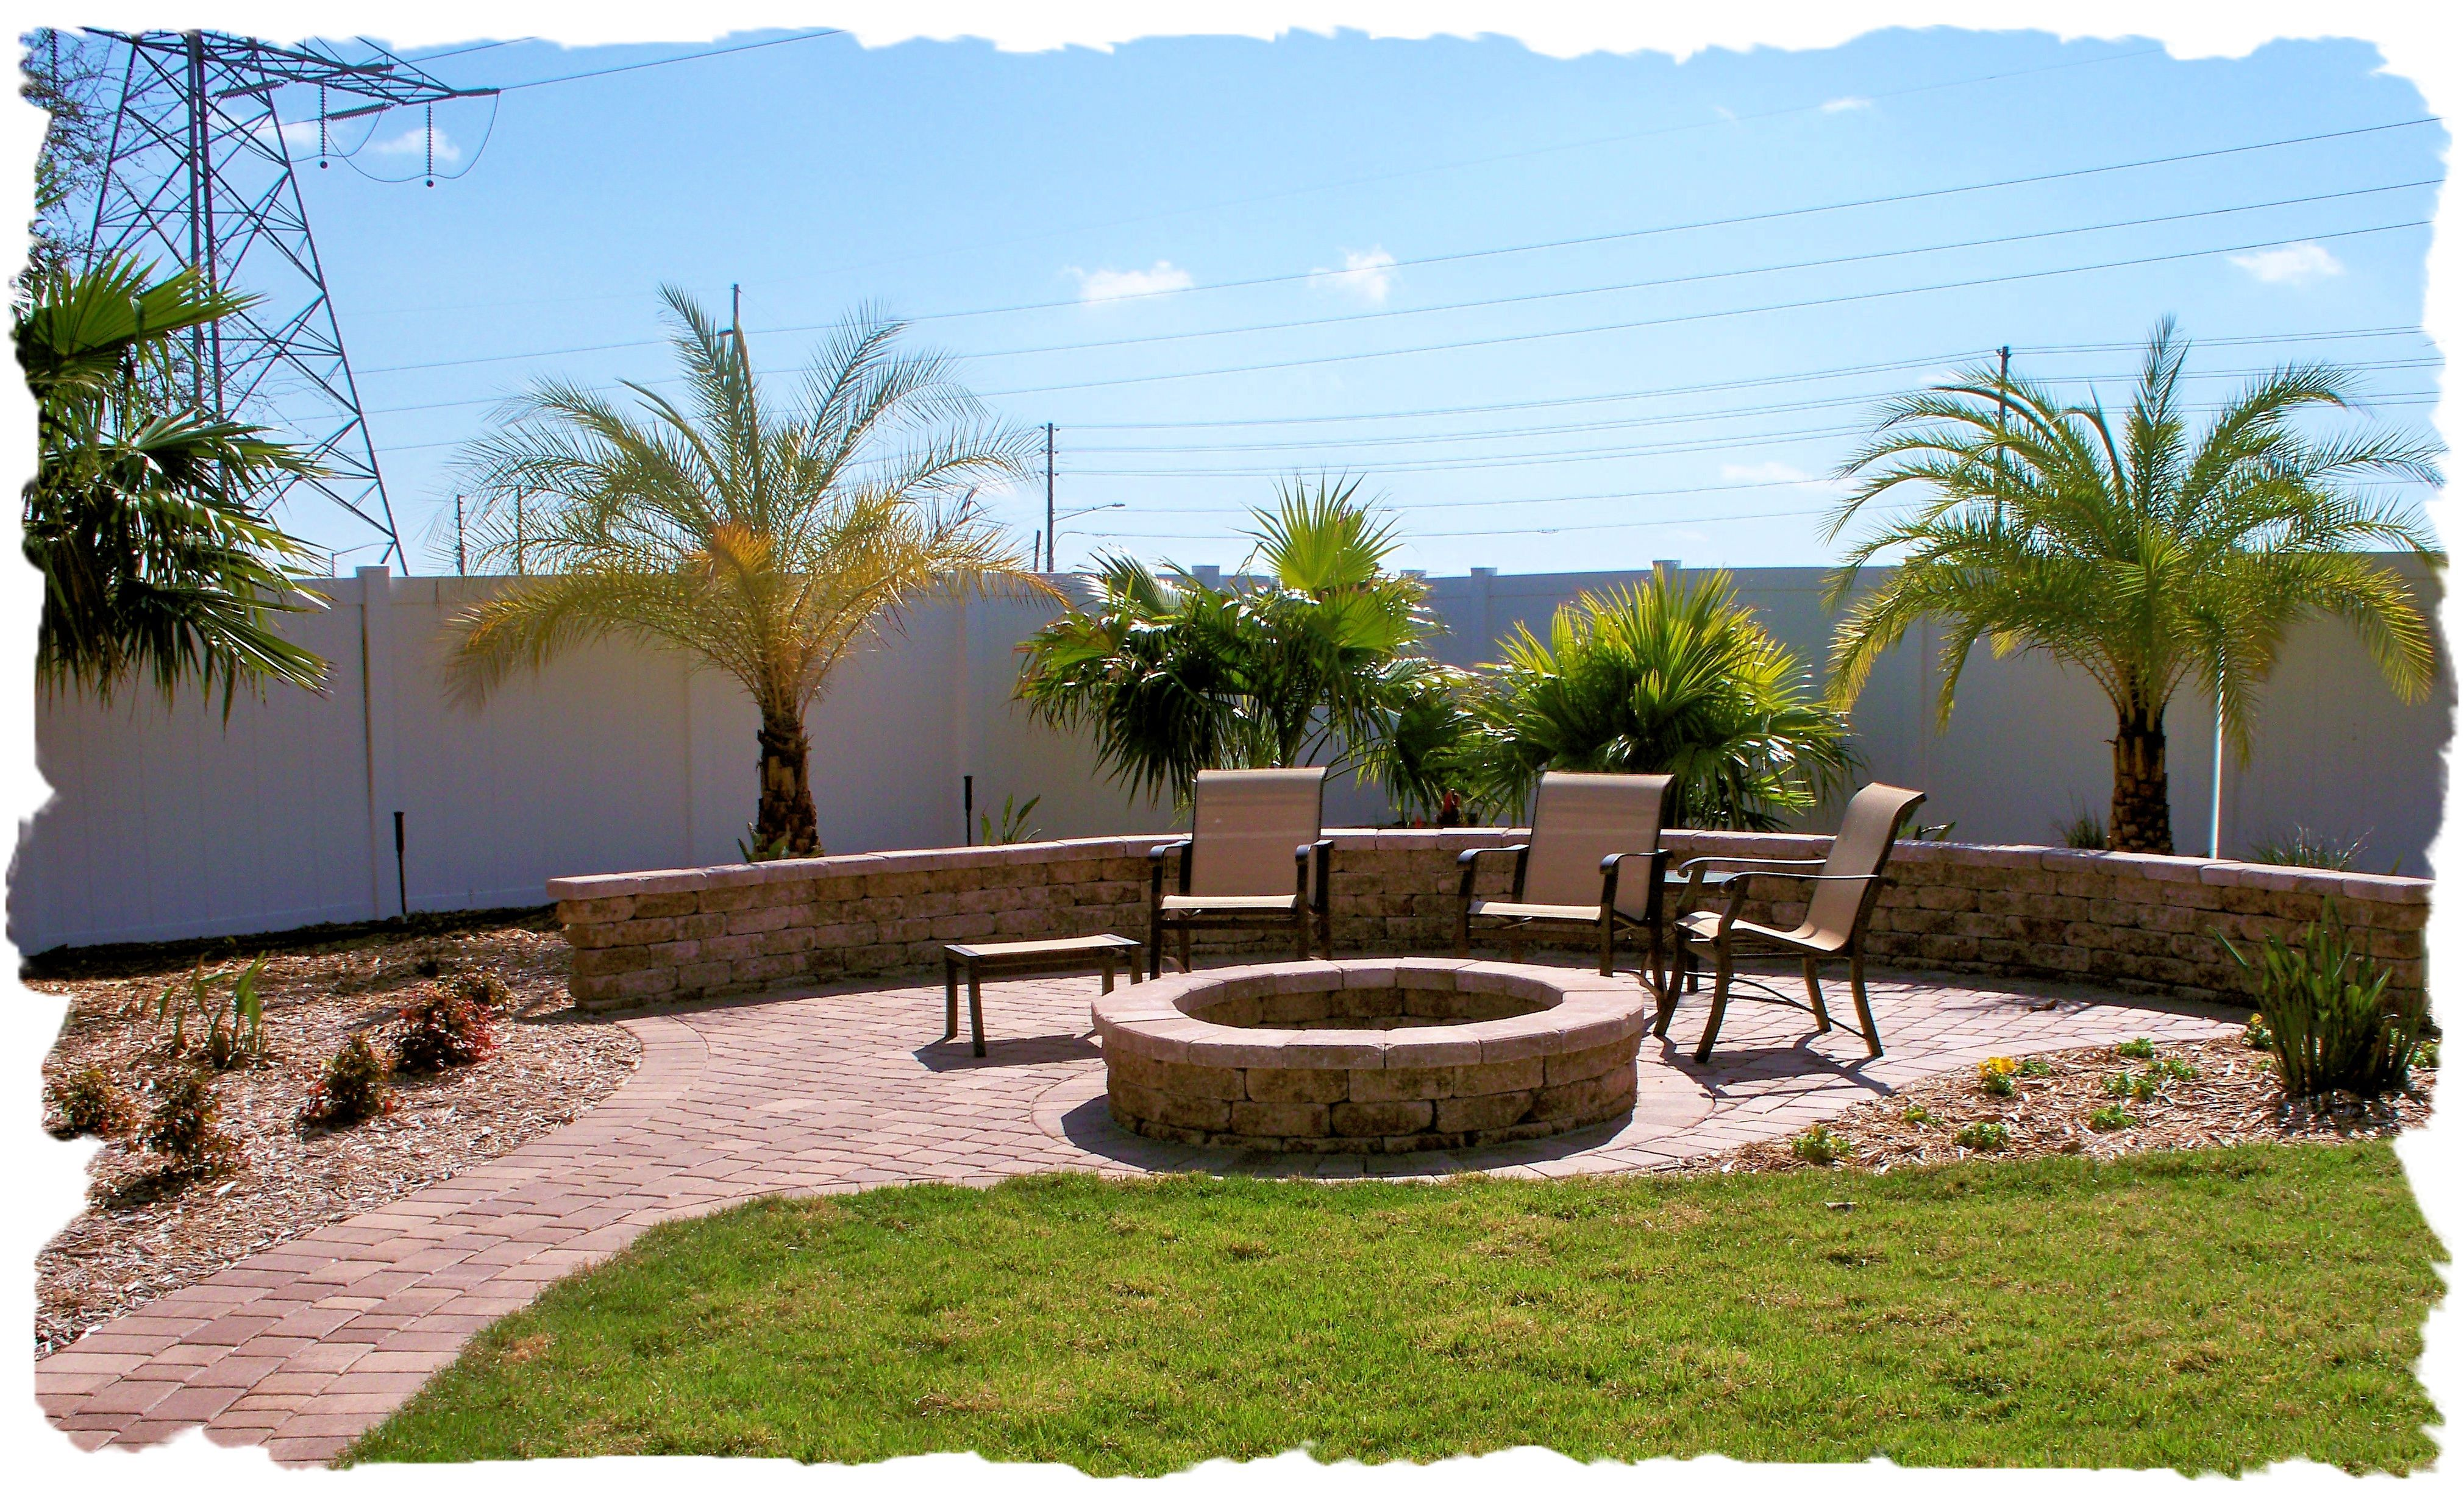 Fire pit | Backyard fire, Fire pit backyard, Backyard on For Living Lawrence Fire Pit id=67992